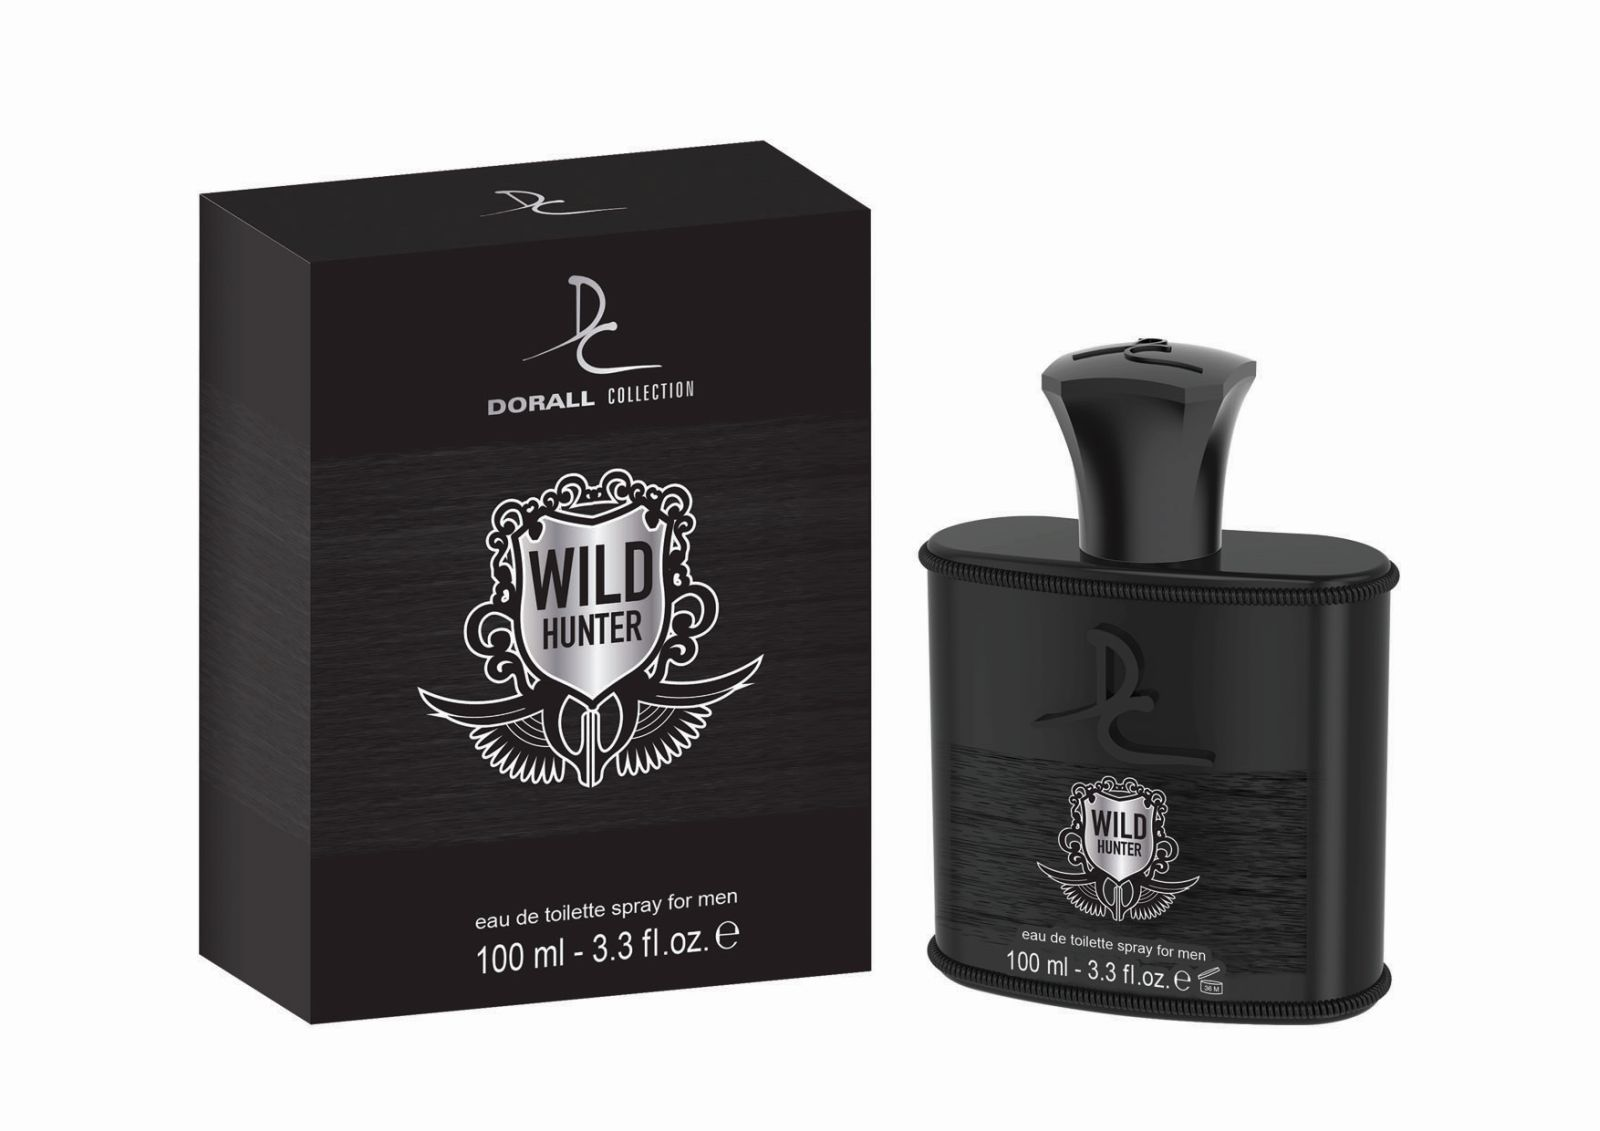 DORALL WILD HUNTER parfém 100ml